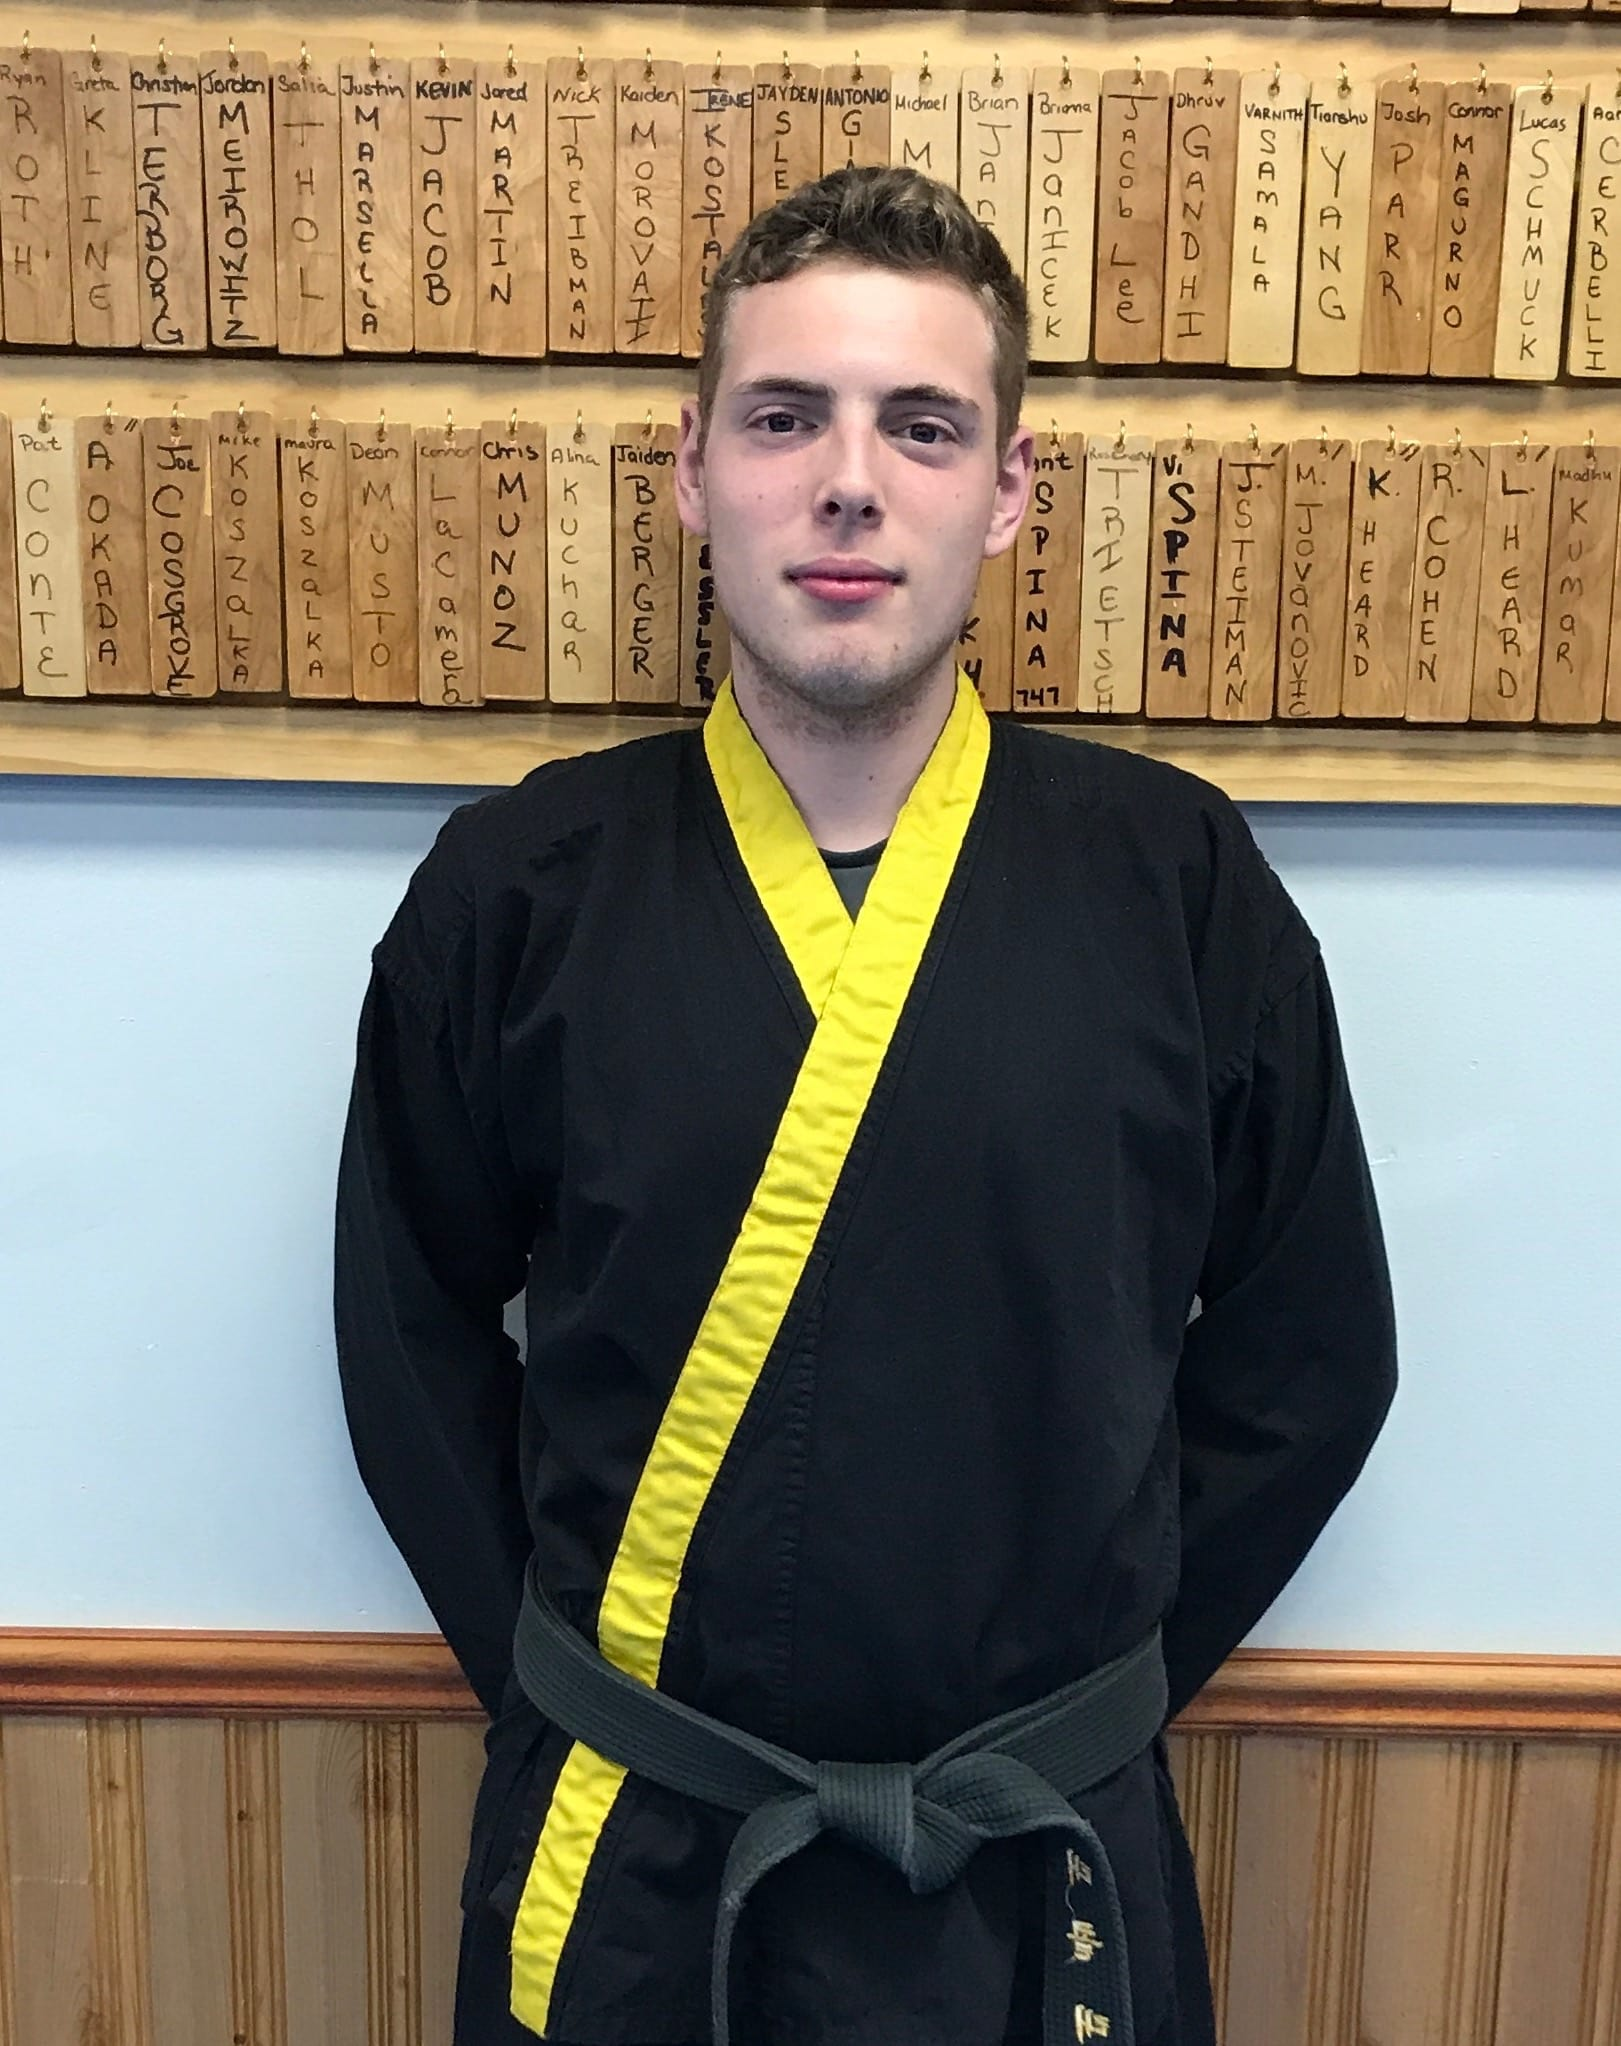 AJ Mele in Albertson - Taecole Tae Kwon Do & Fitness